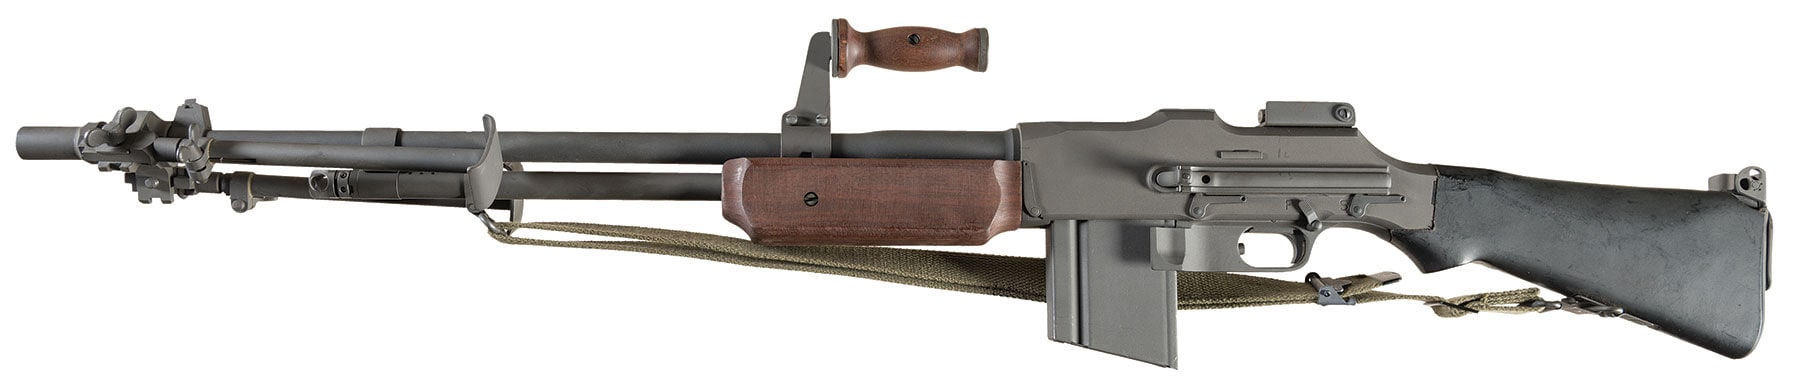 The 1918A3 OOW is a semi-auto Browning Automatic Rifle introduced in 1996, and Rock Island has donated one in an auction to benefit Hurricane Harvey survivors. (Photo: RIA)